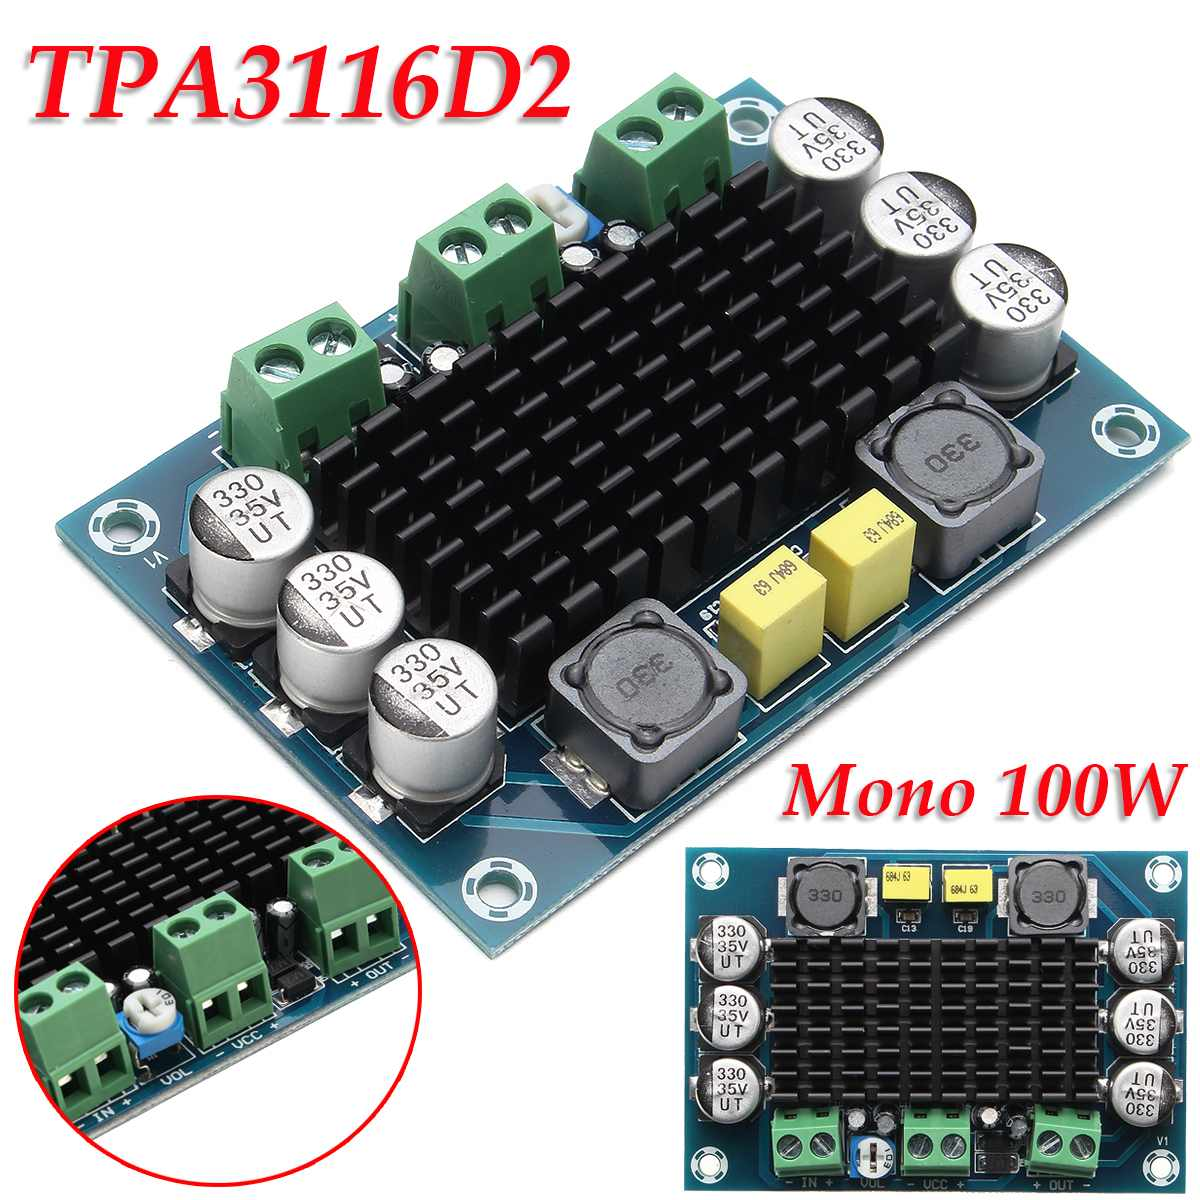 Main Board Power Board Circuit Logic Board Constant Current Board Led 55f5510pf Motherboard 35018171 Screen 211yt Accessories & Parts Circuits